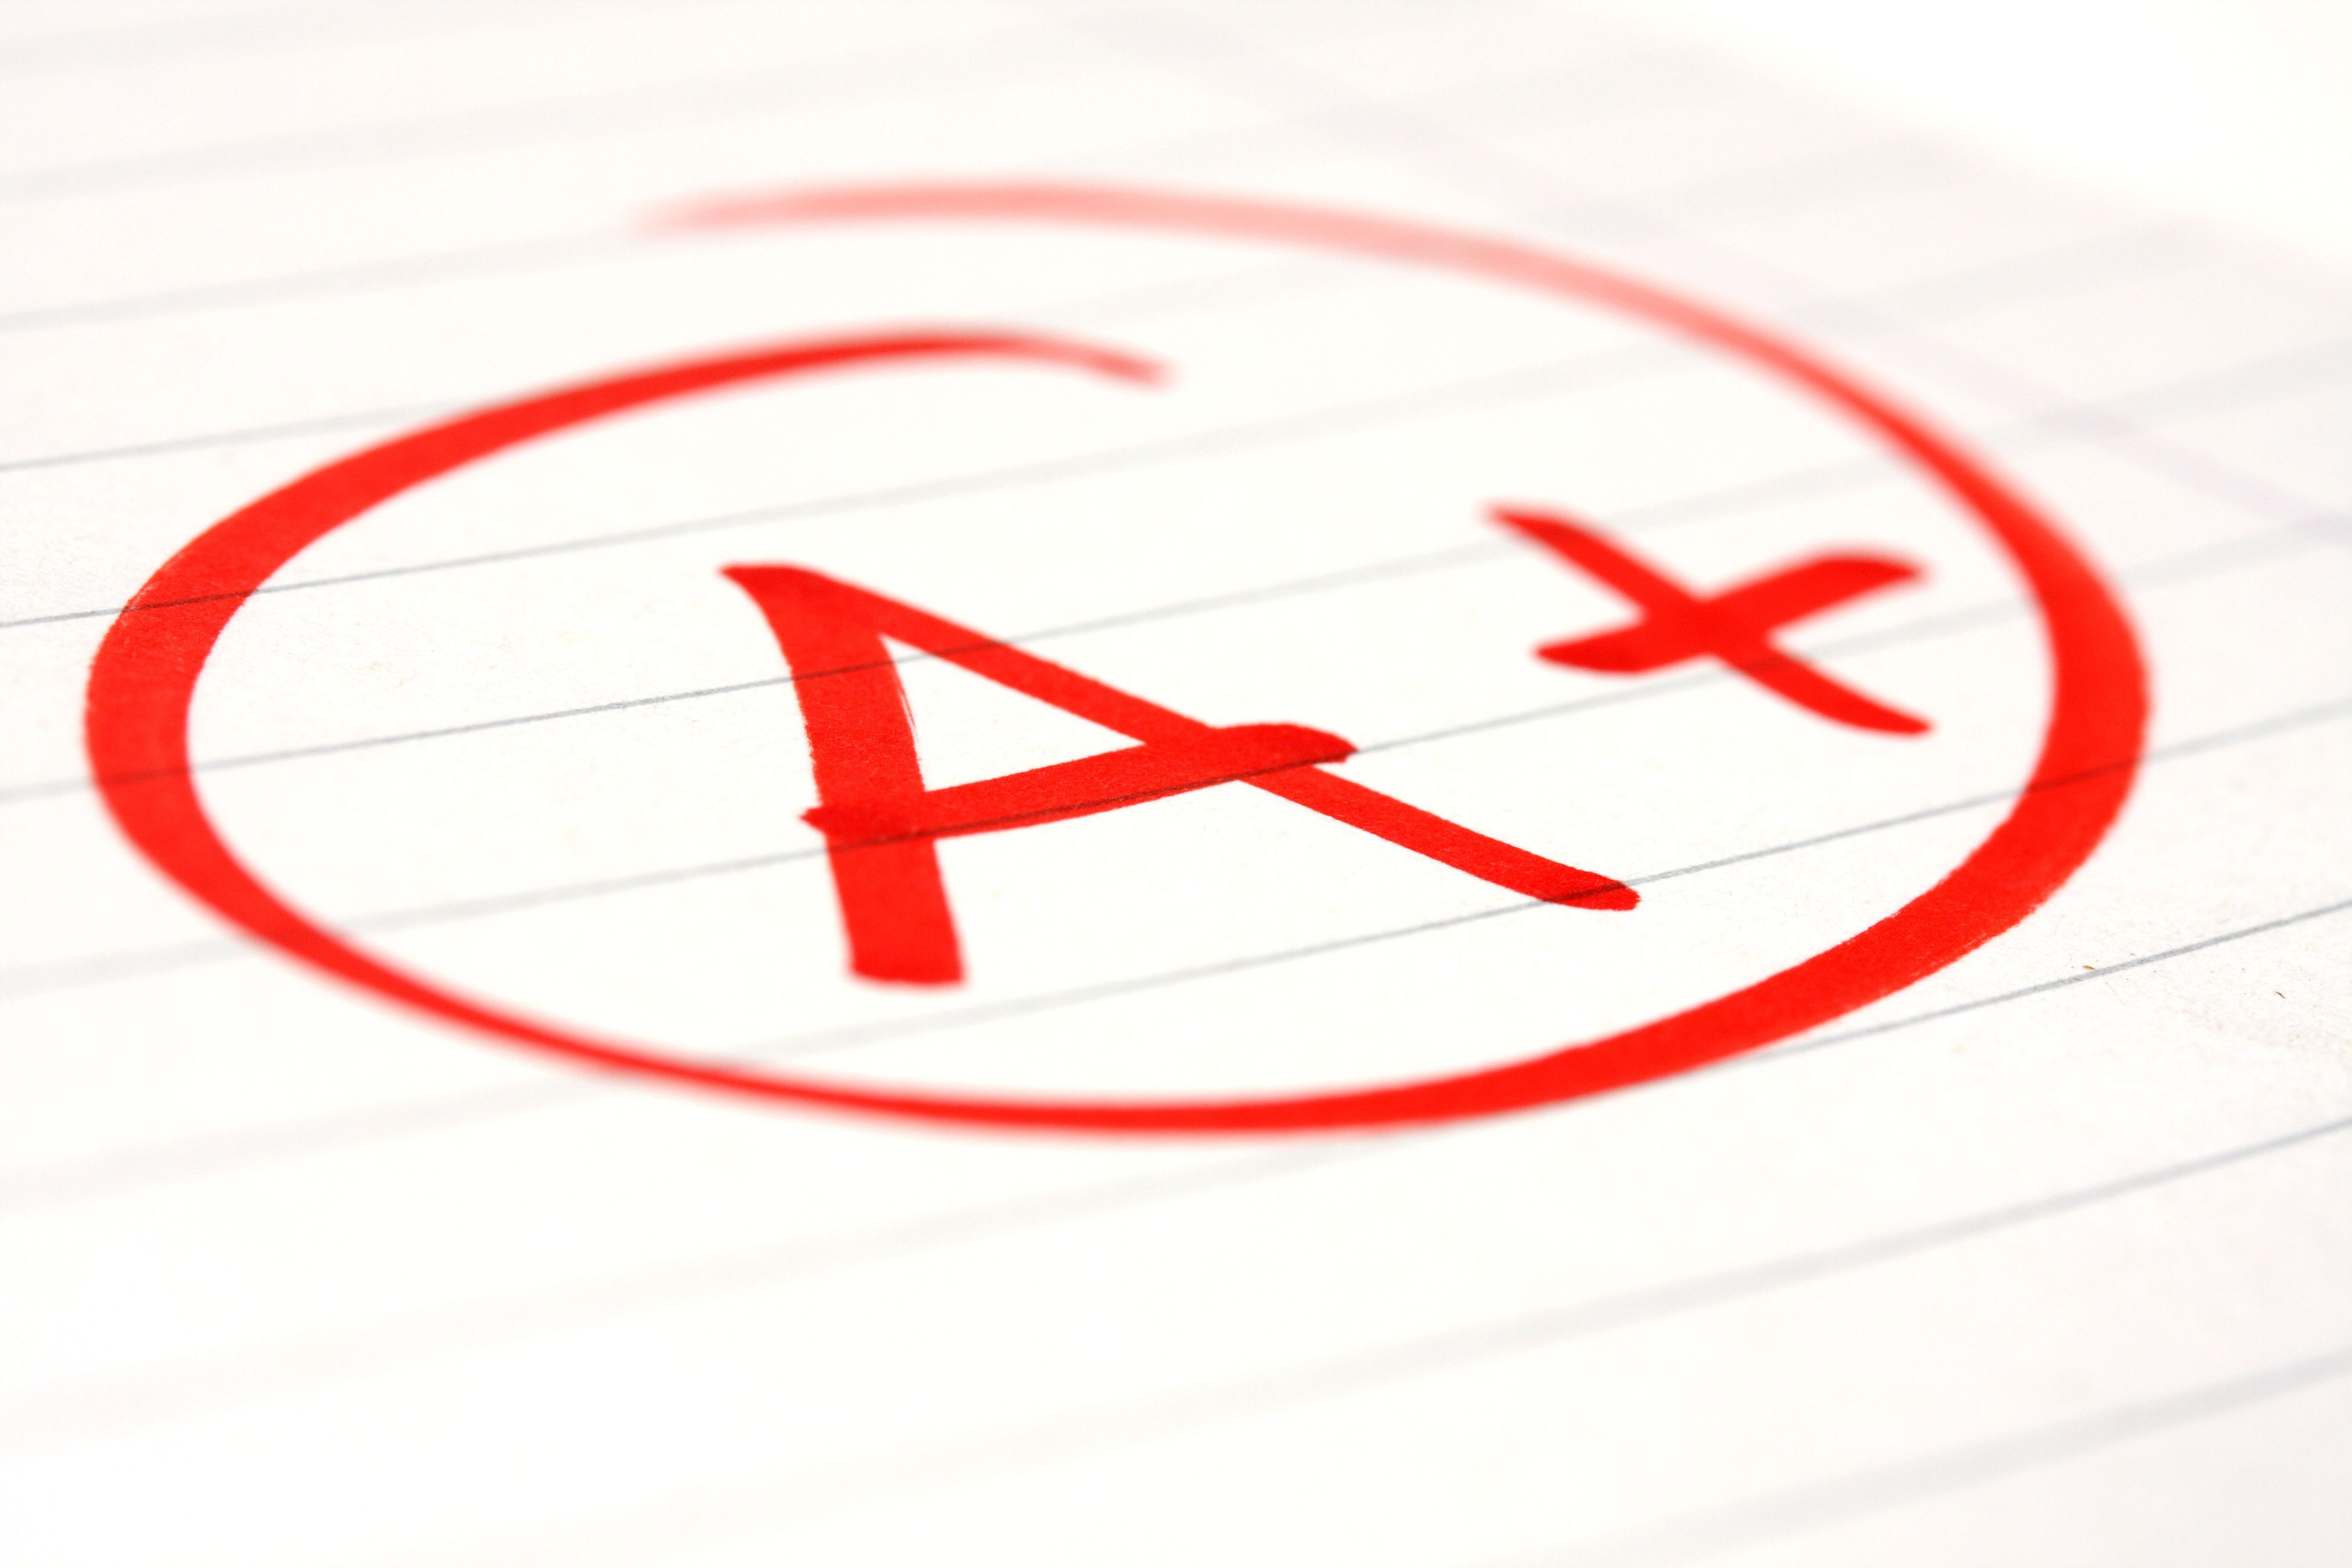 Grading Assignments When Homeschooling Your Child